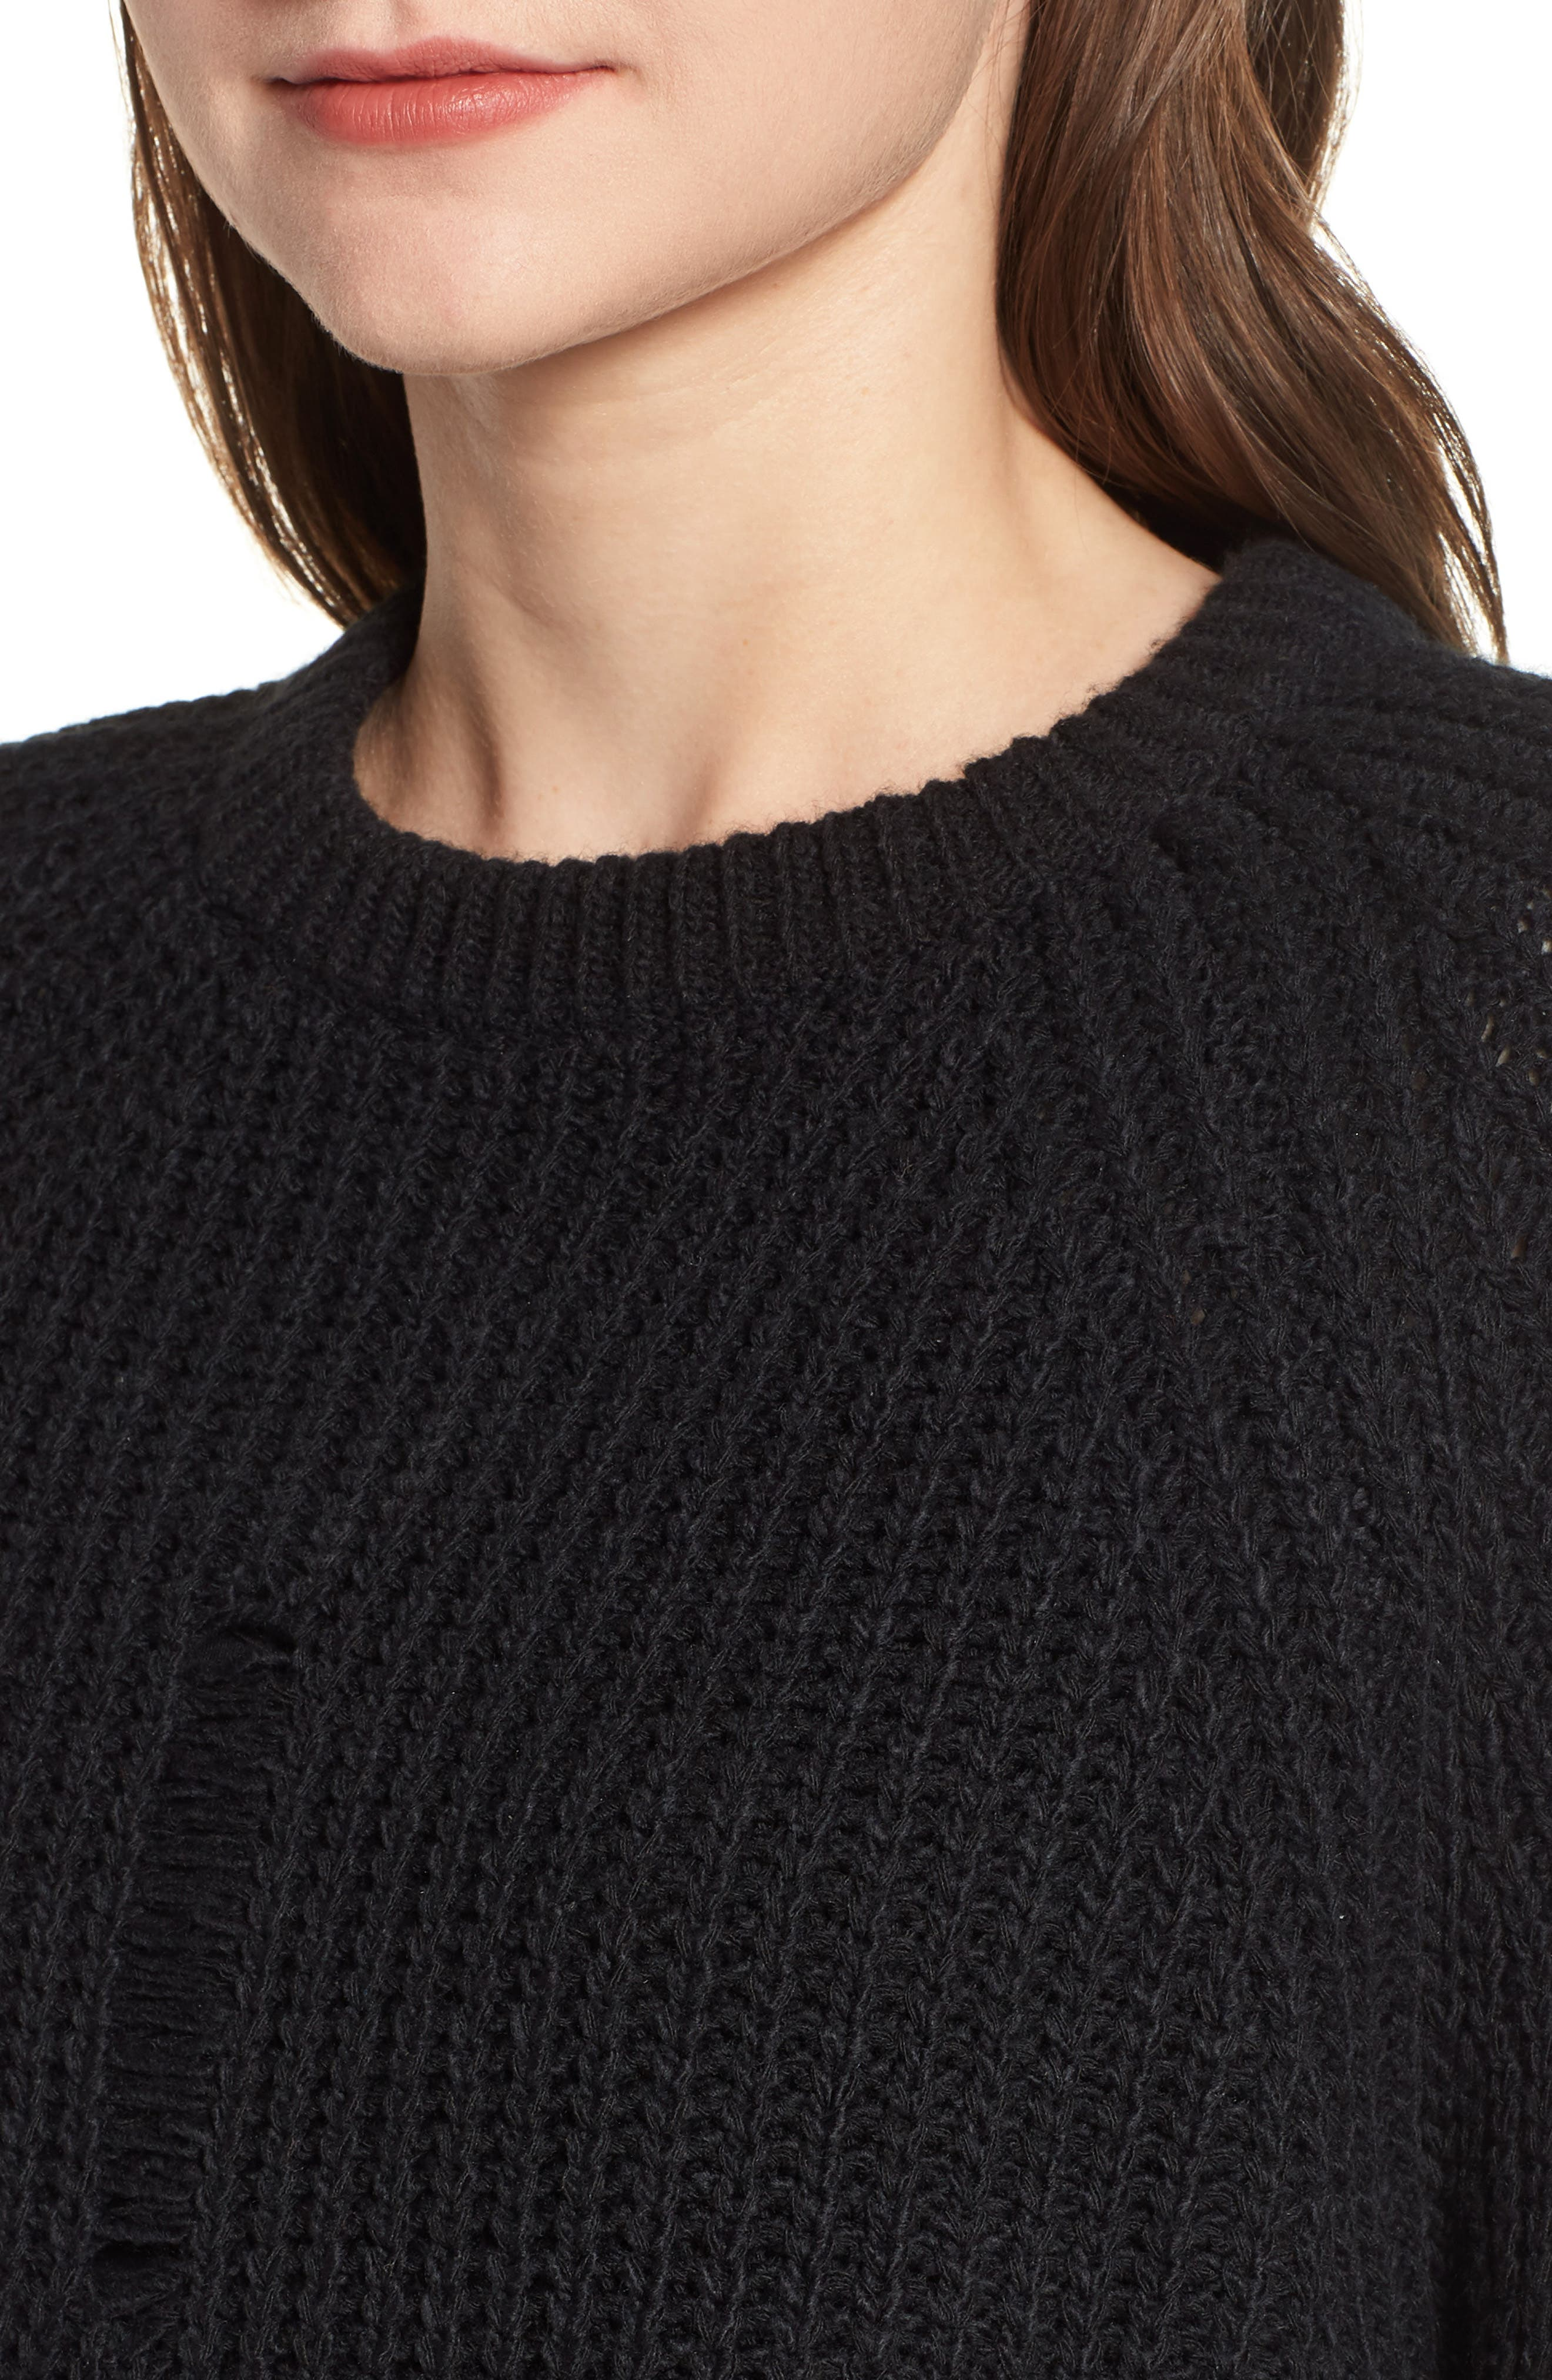 Bishop + Young Simone Distressed Shaker Sweater,                             Alternate thumbnail 4, color,                             BLACK